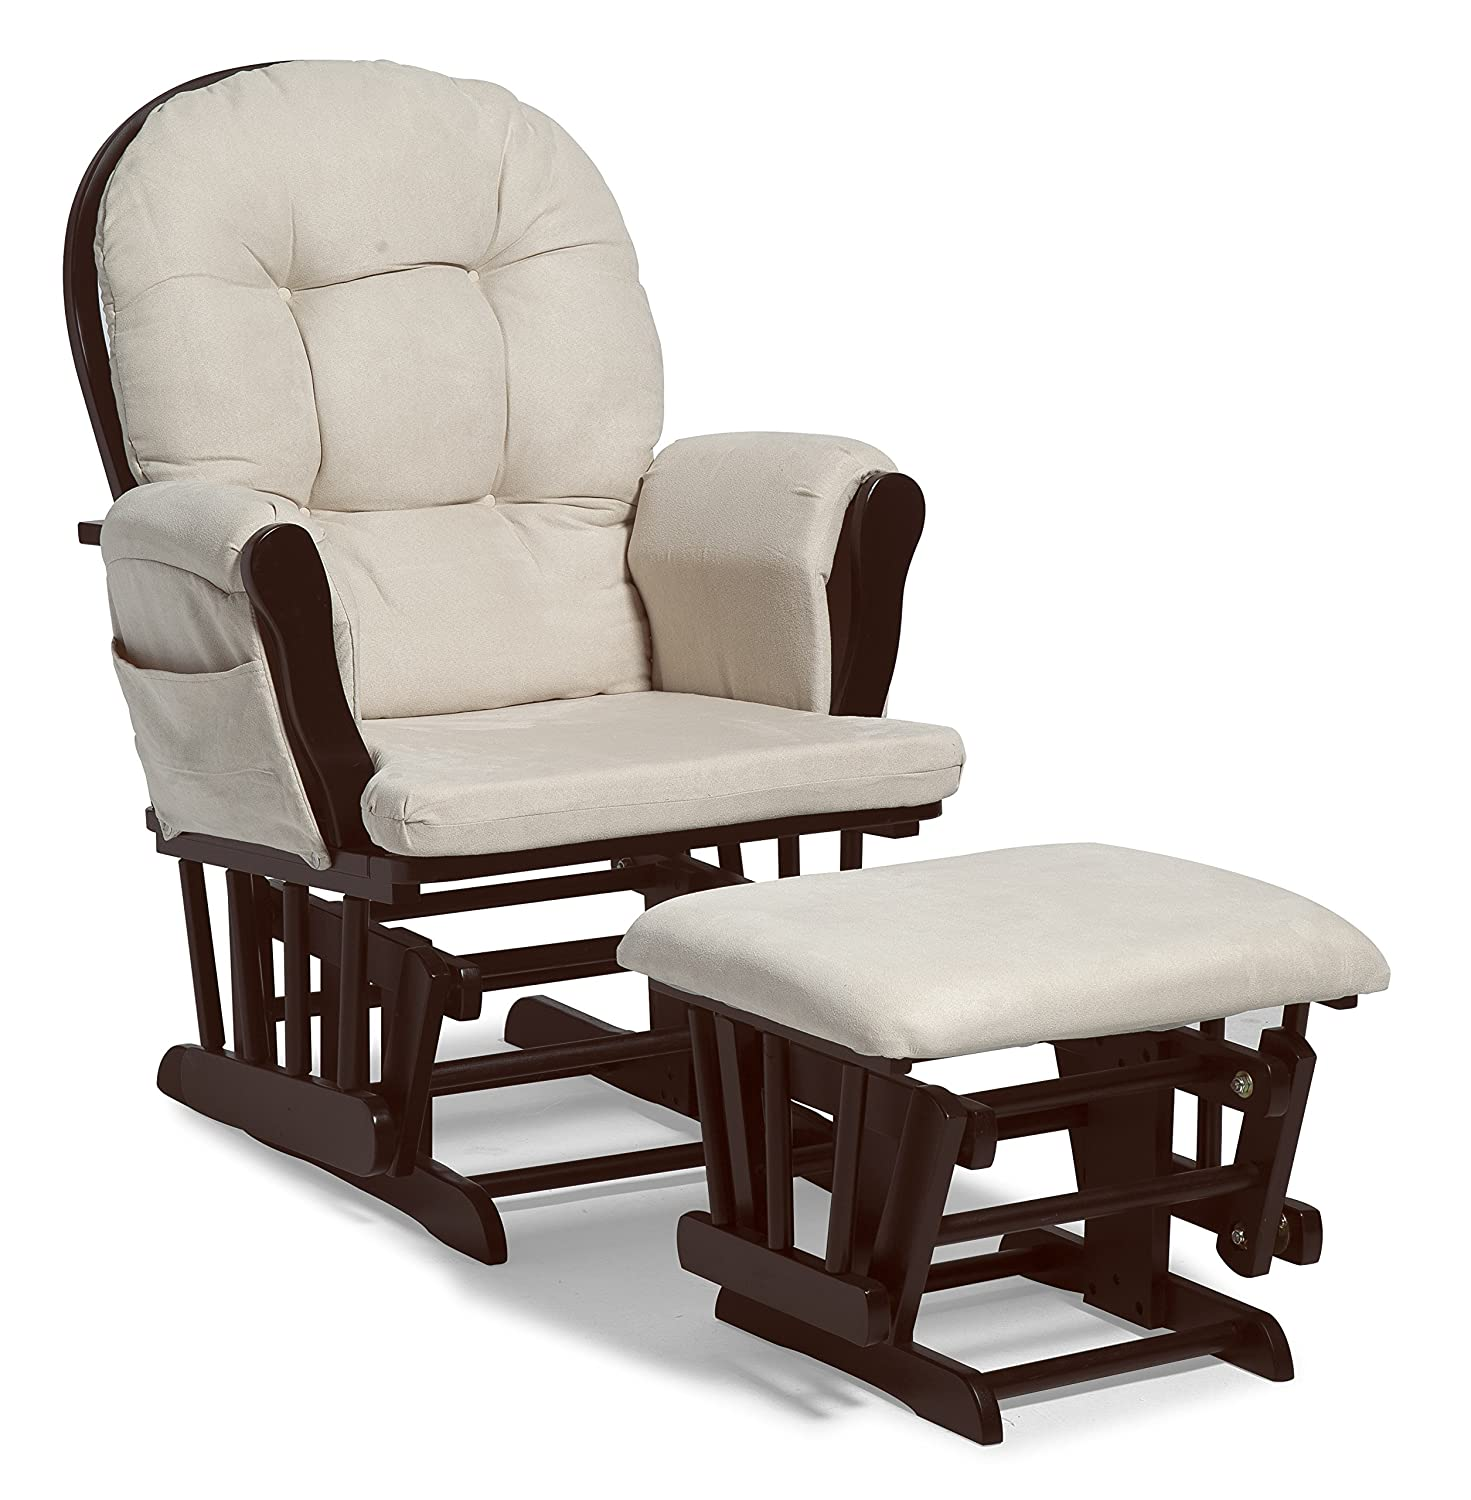 Amazon Gliders Ottomans & Rocking Chairs Baby Products